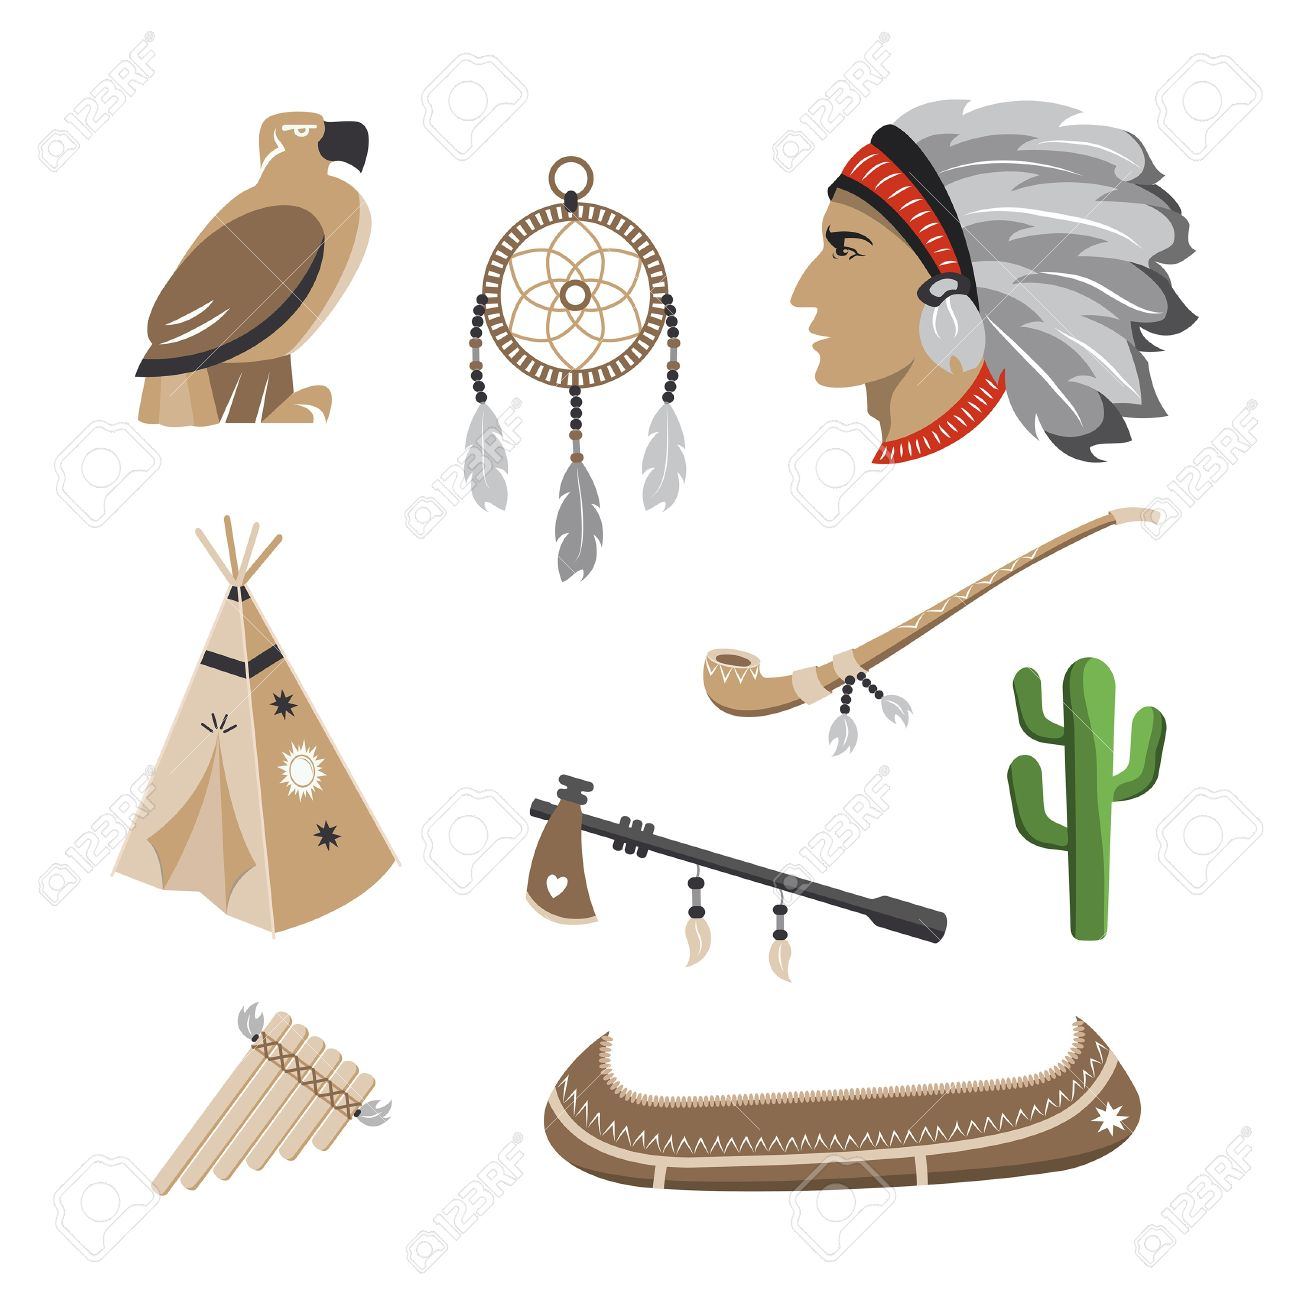 Native american symbol icons Stock Vector - 20455700